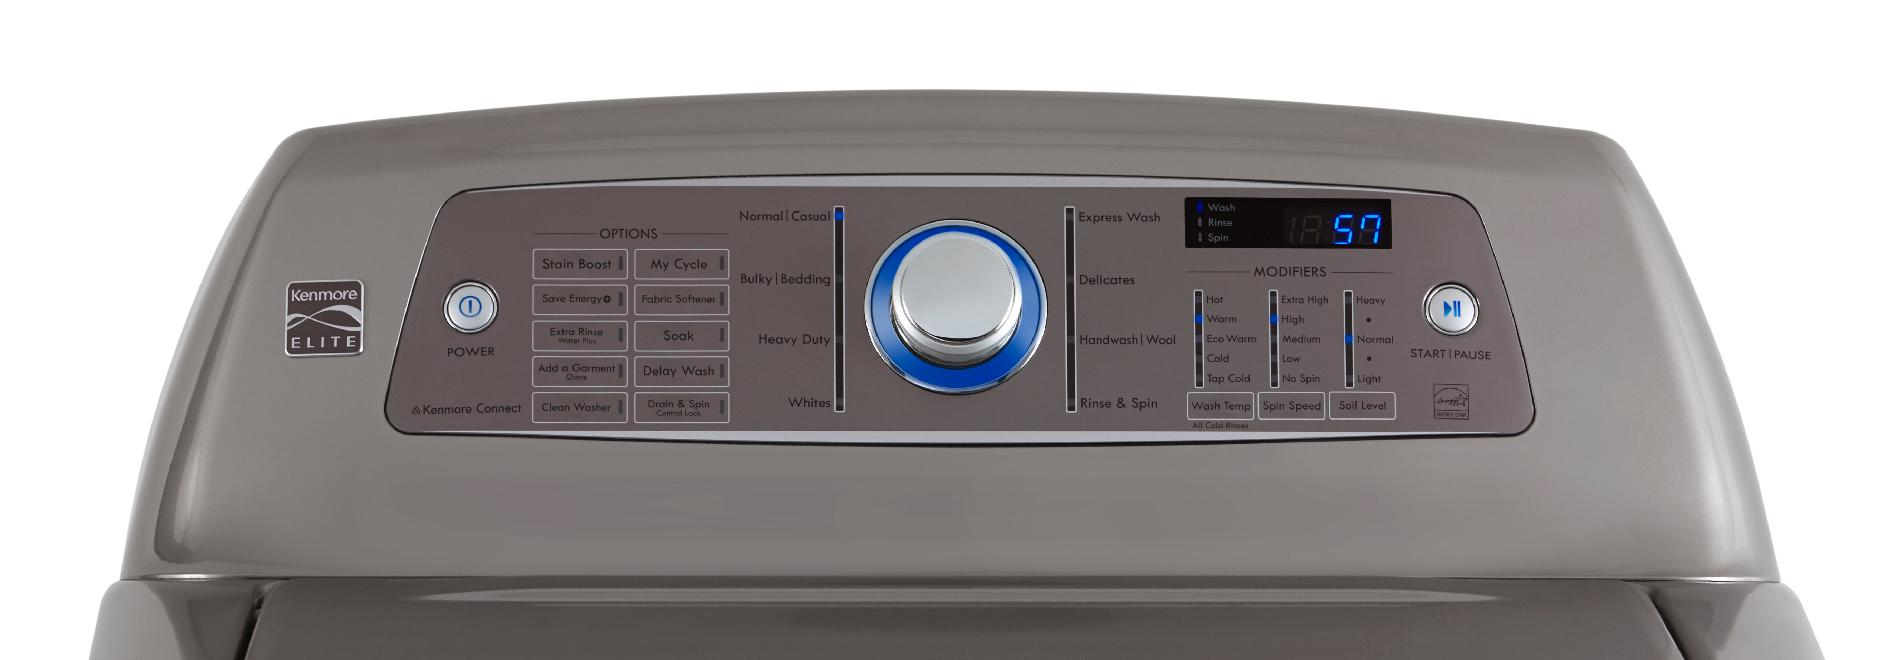 Kenmore Elite 4.7 cu. ft. High-Efficiency Top-Load Washer - Metallic Silver